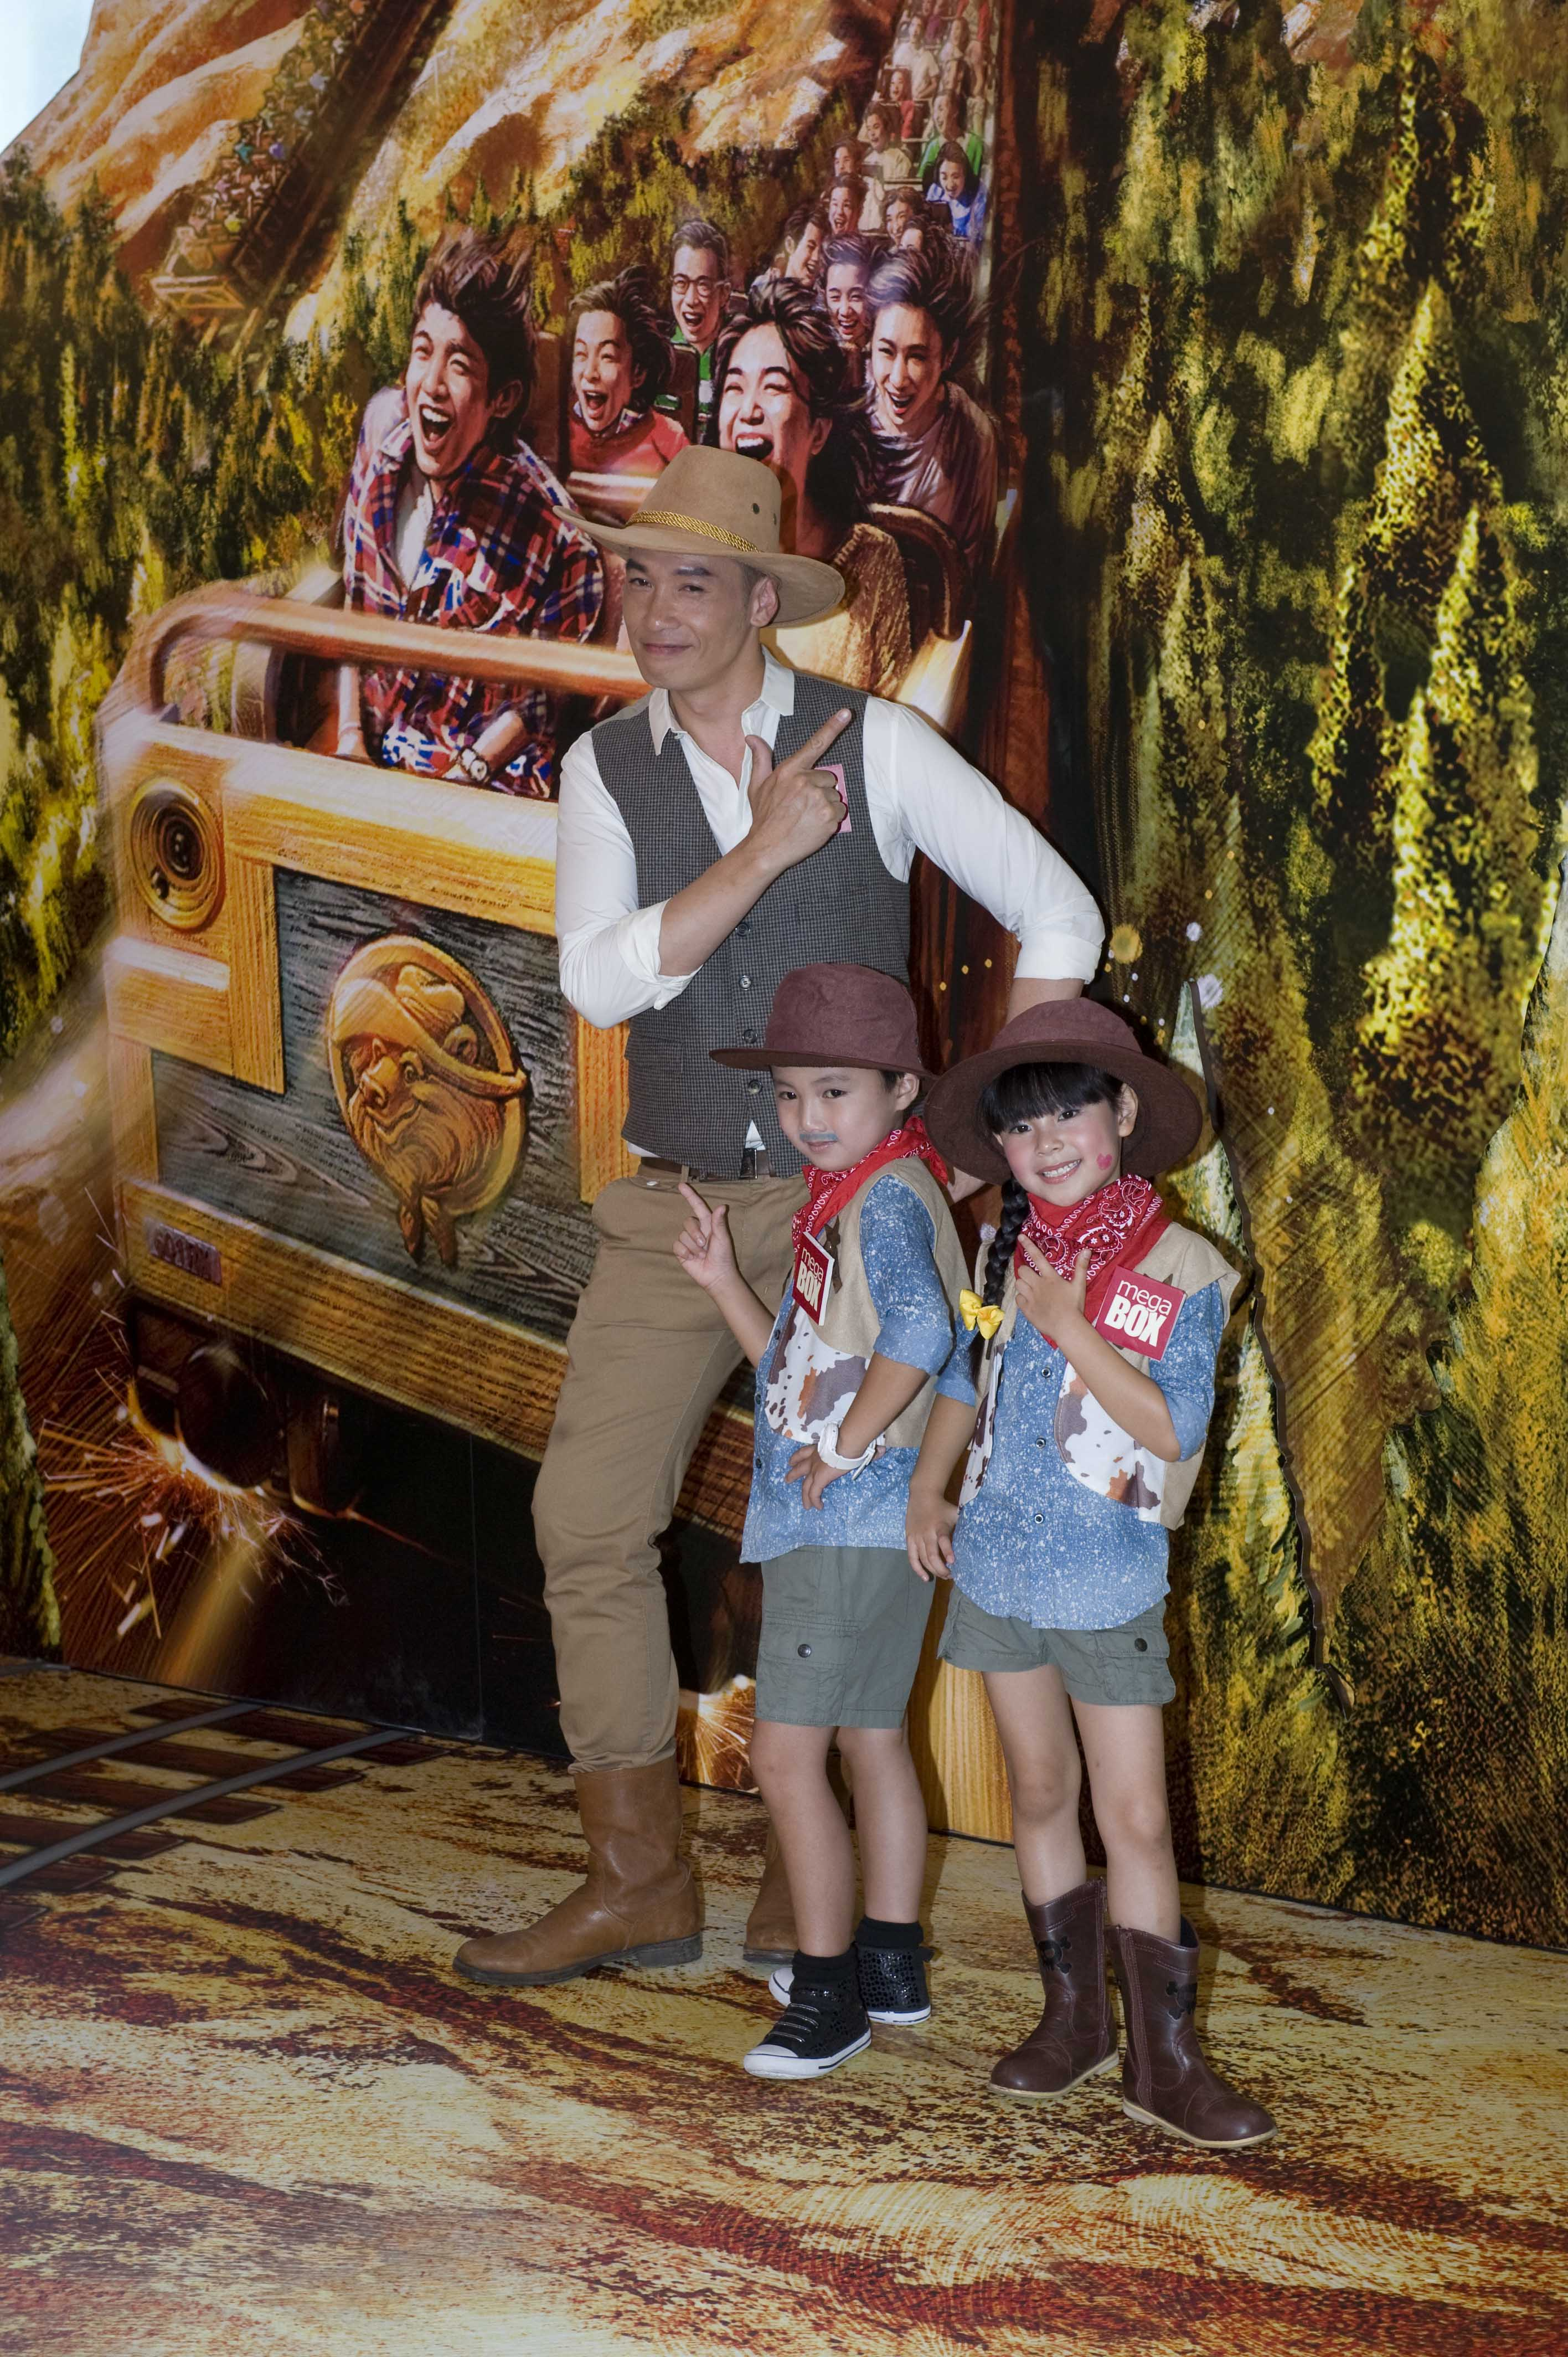 MegaBox invites you to a Runaway Adventure at Grizzly Gulch! Kick-off Ceremony